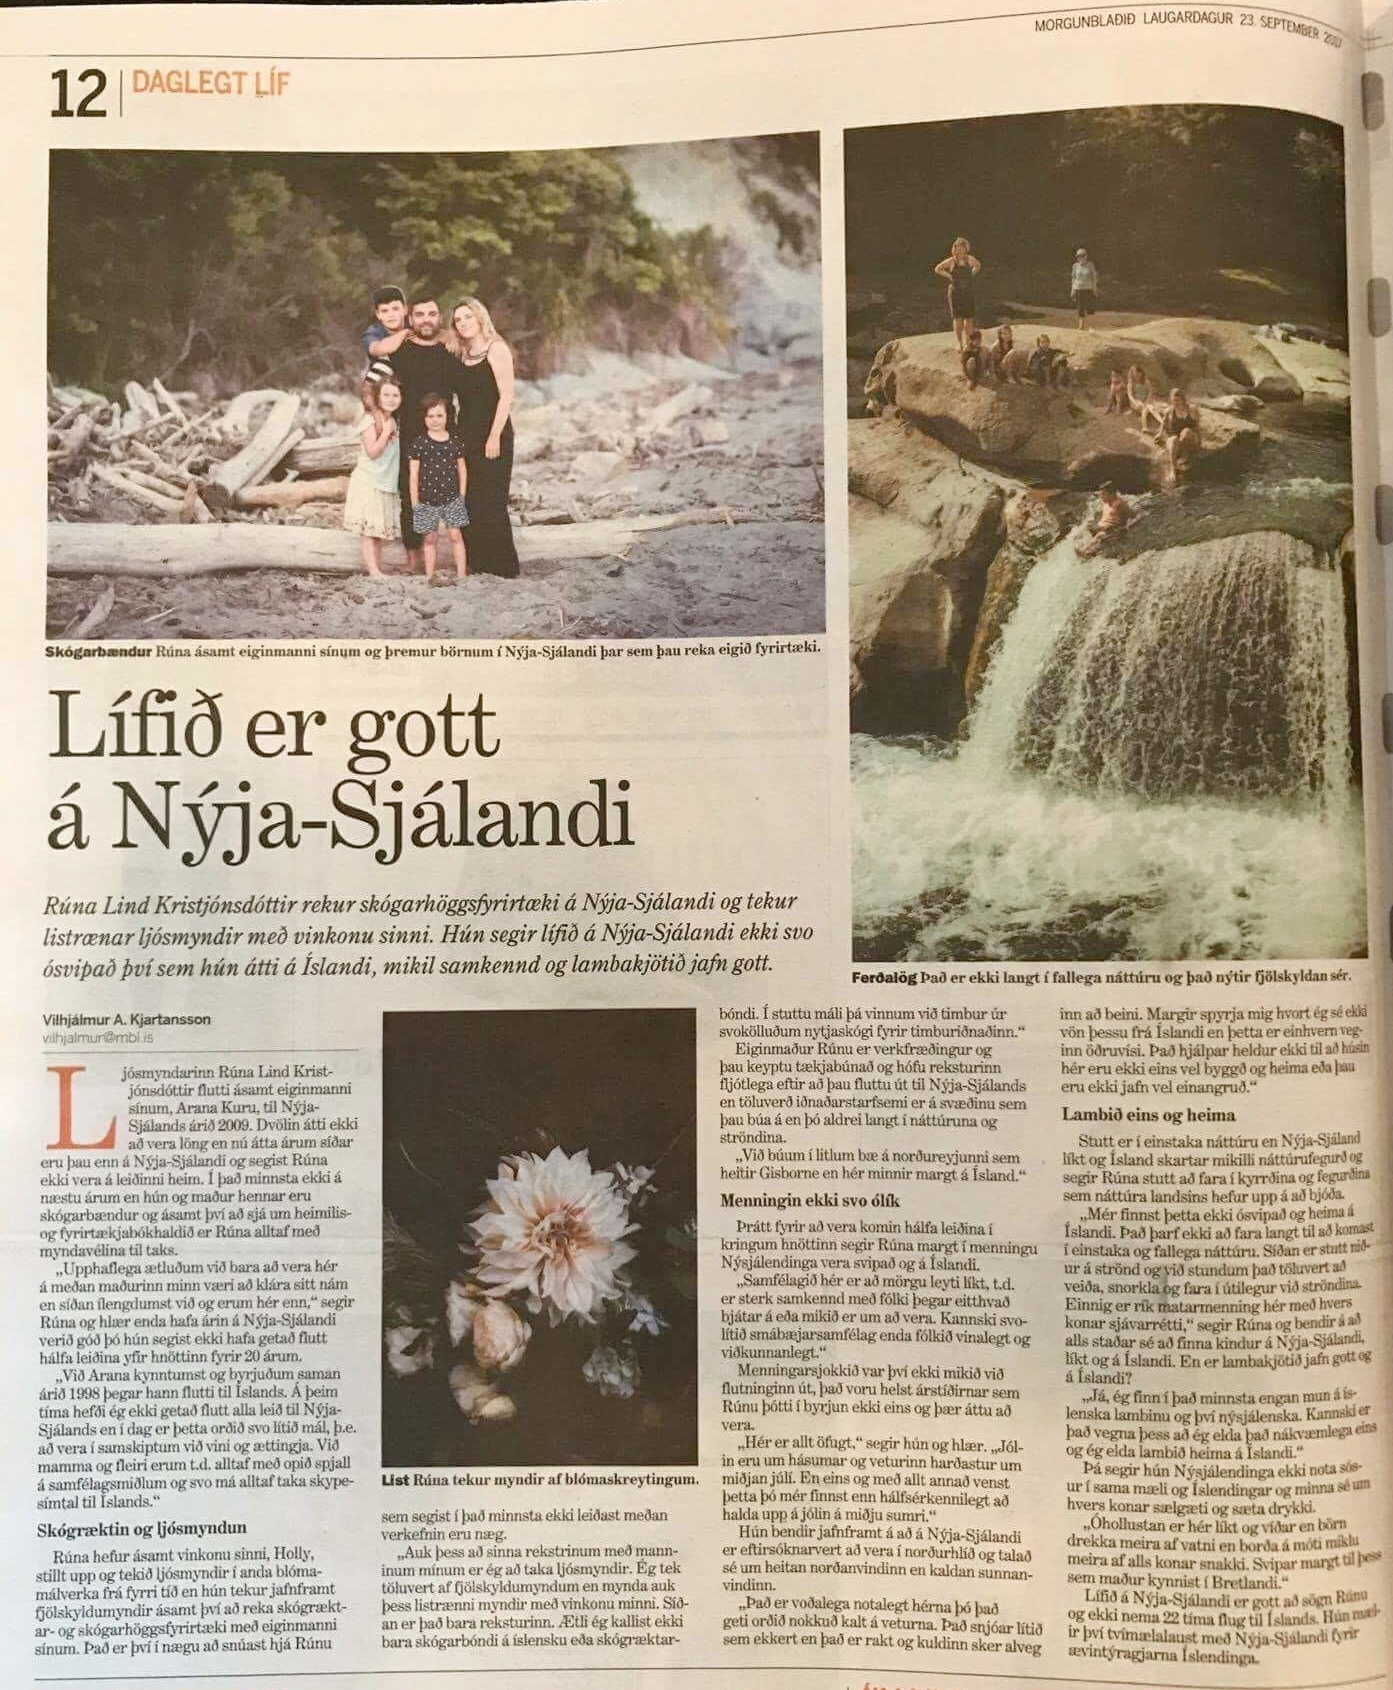 Runa was feature in an Icelandic Newspaper in September 2017 about her life in New Zealand, Click the image to see online article.